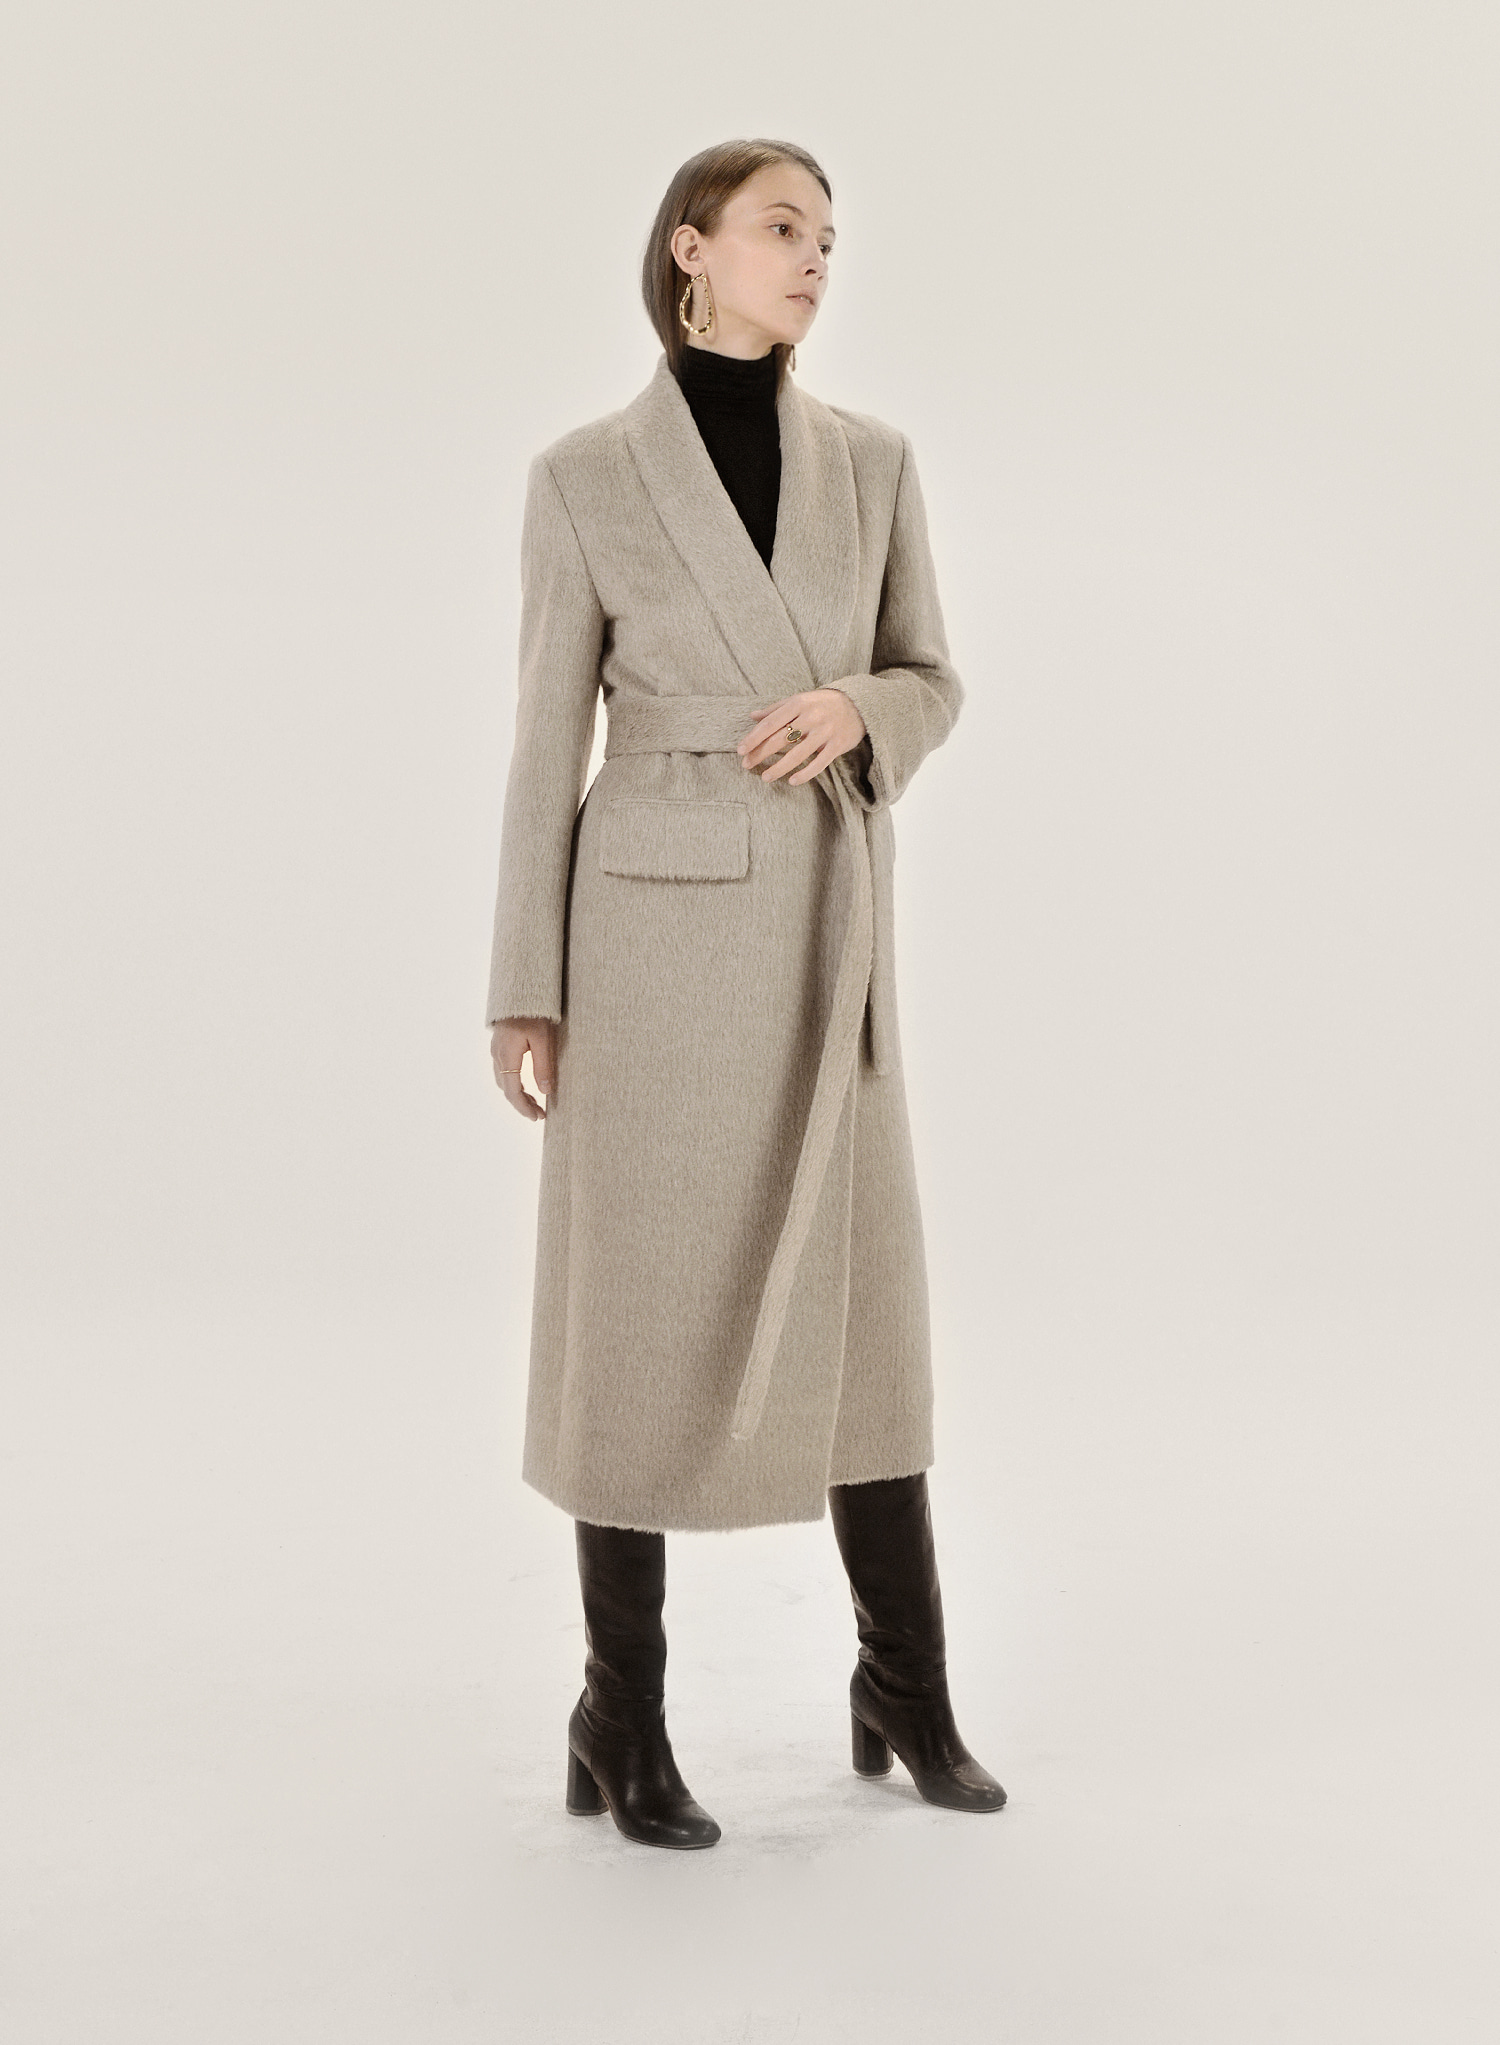 SHAWL COLLAR SURI ALPACA COAT / OATMEAL